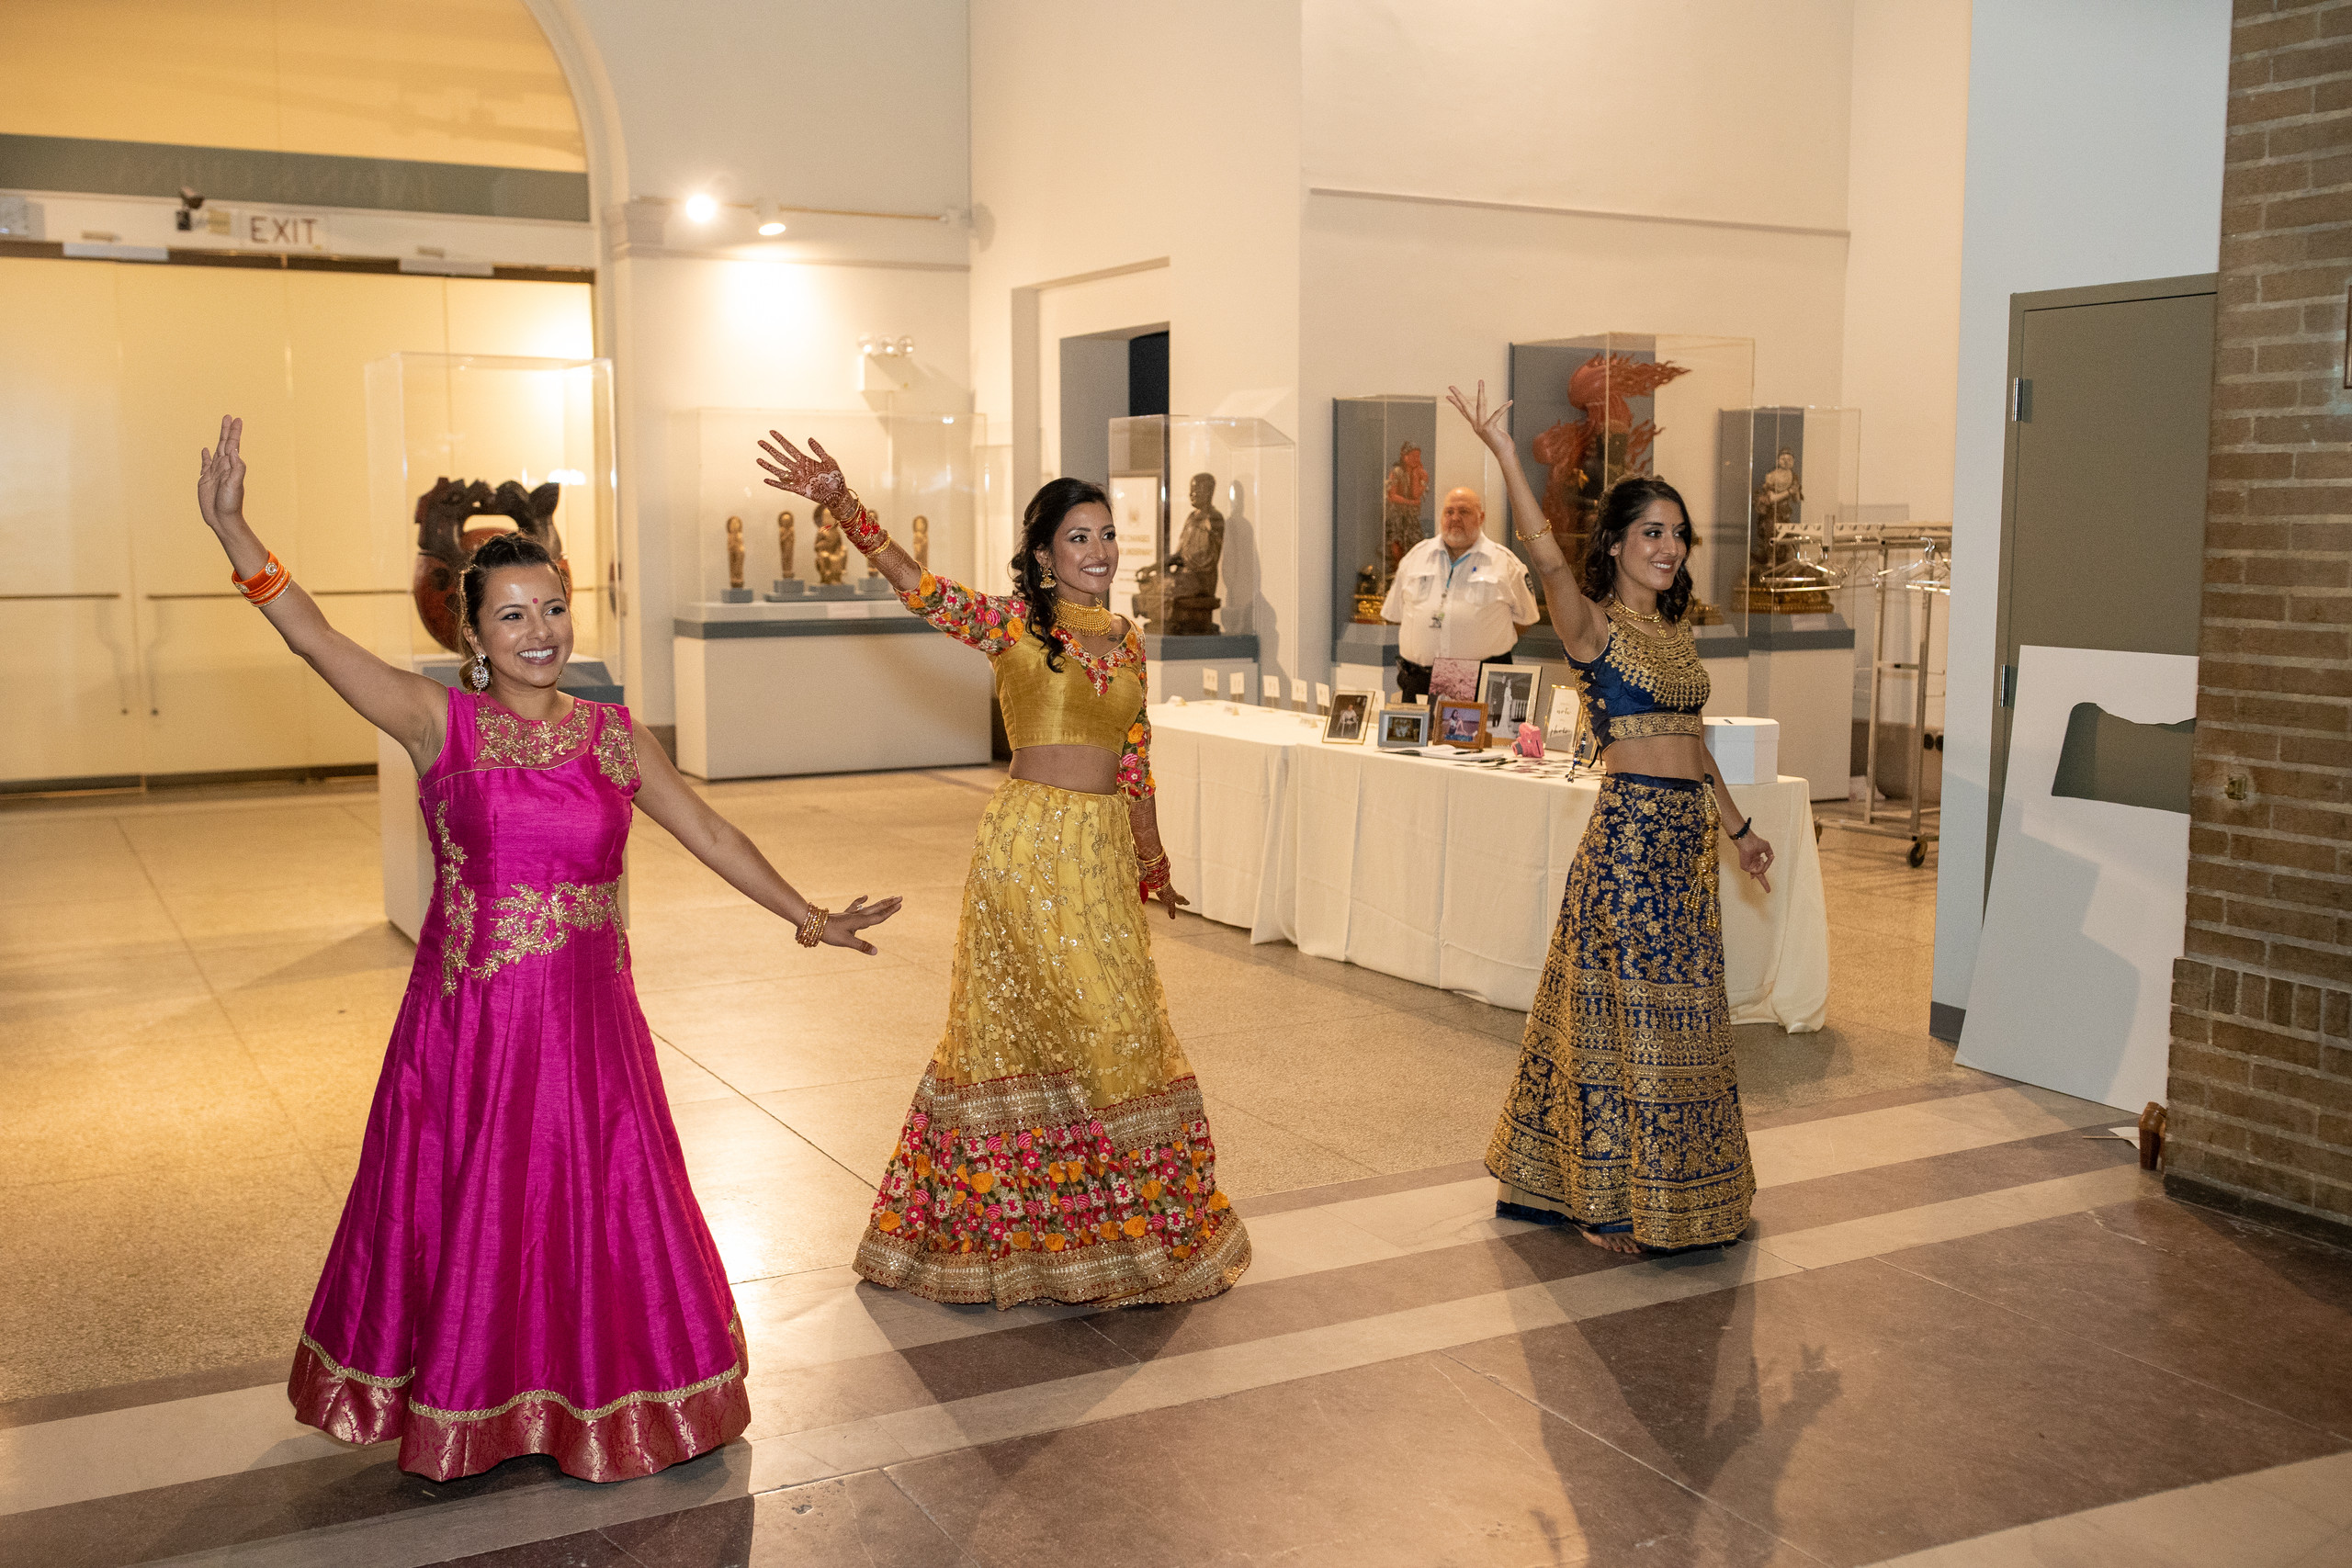 The bride, her sister and friend put on a special performance for the groom and guests during the wedding reception at the Penn Museum in Philadelphia, Pennsylvania.